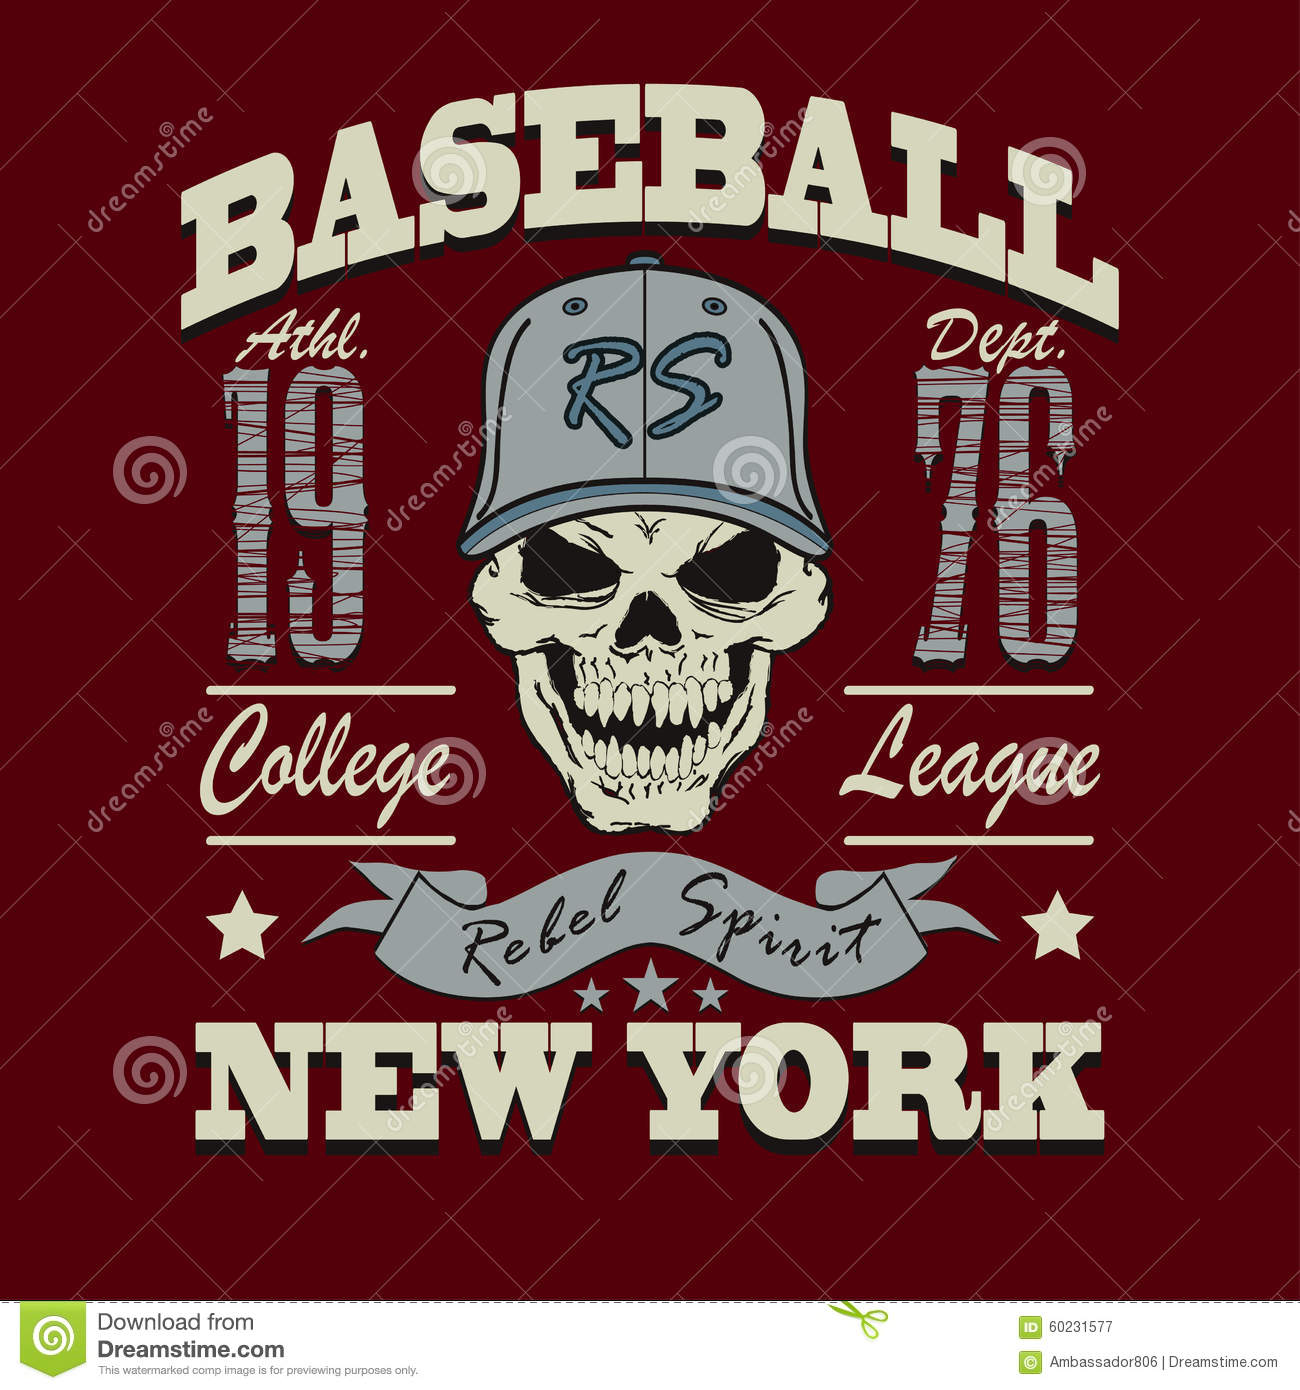 Design t shirt baseball - Baseball College Design Graphic Illustration Shirt